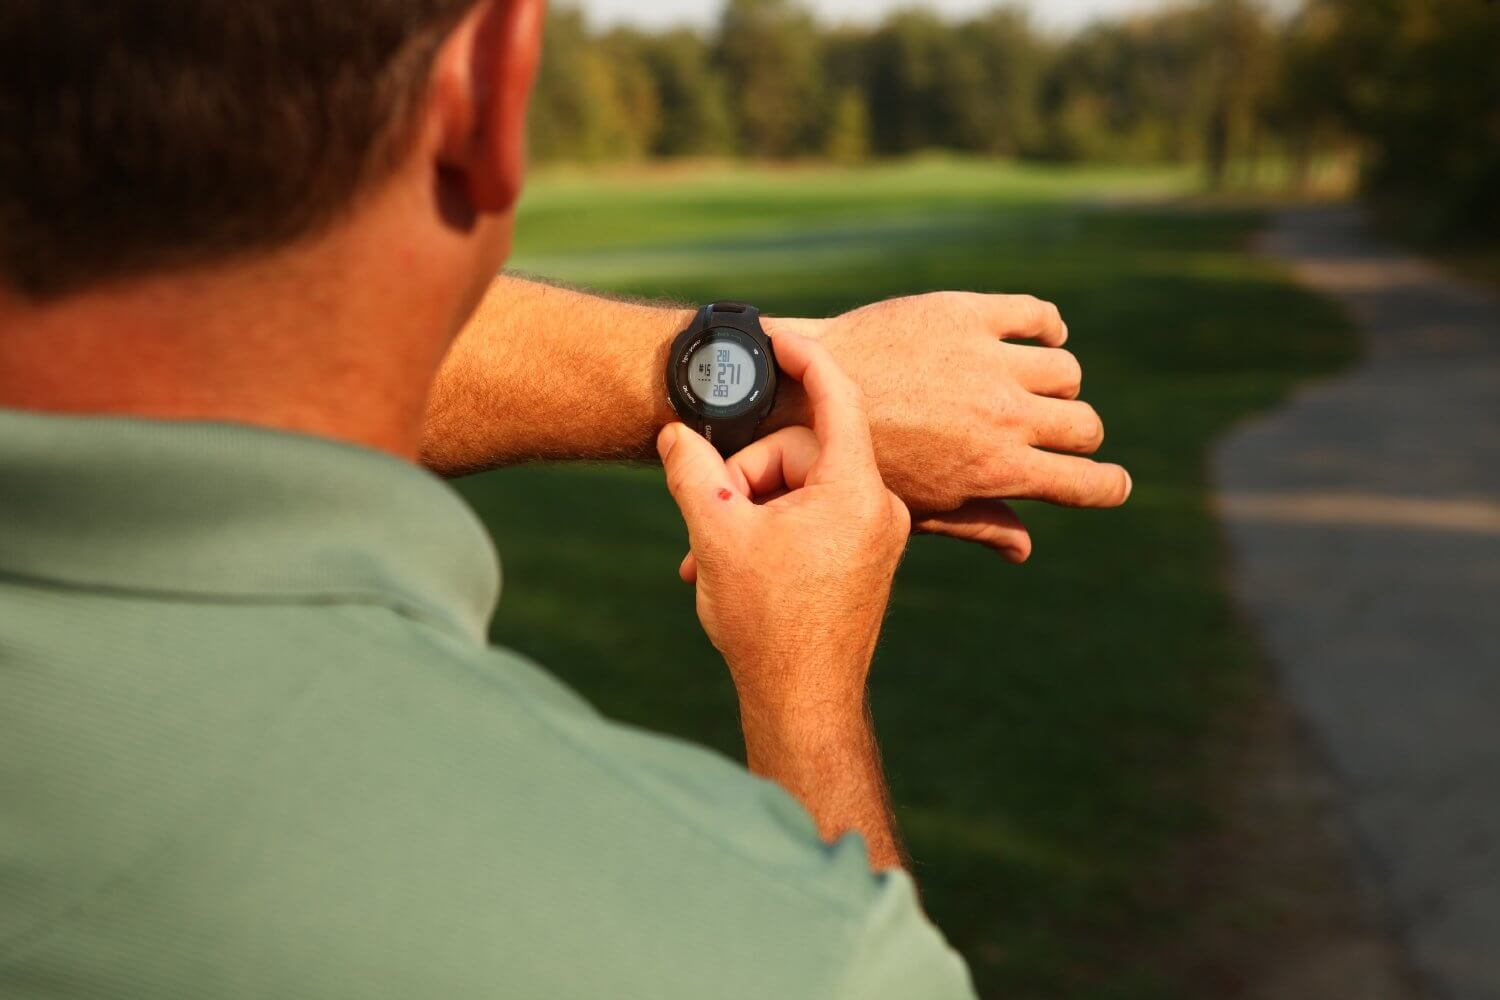 test montre gps de golf